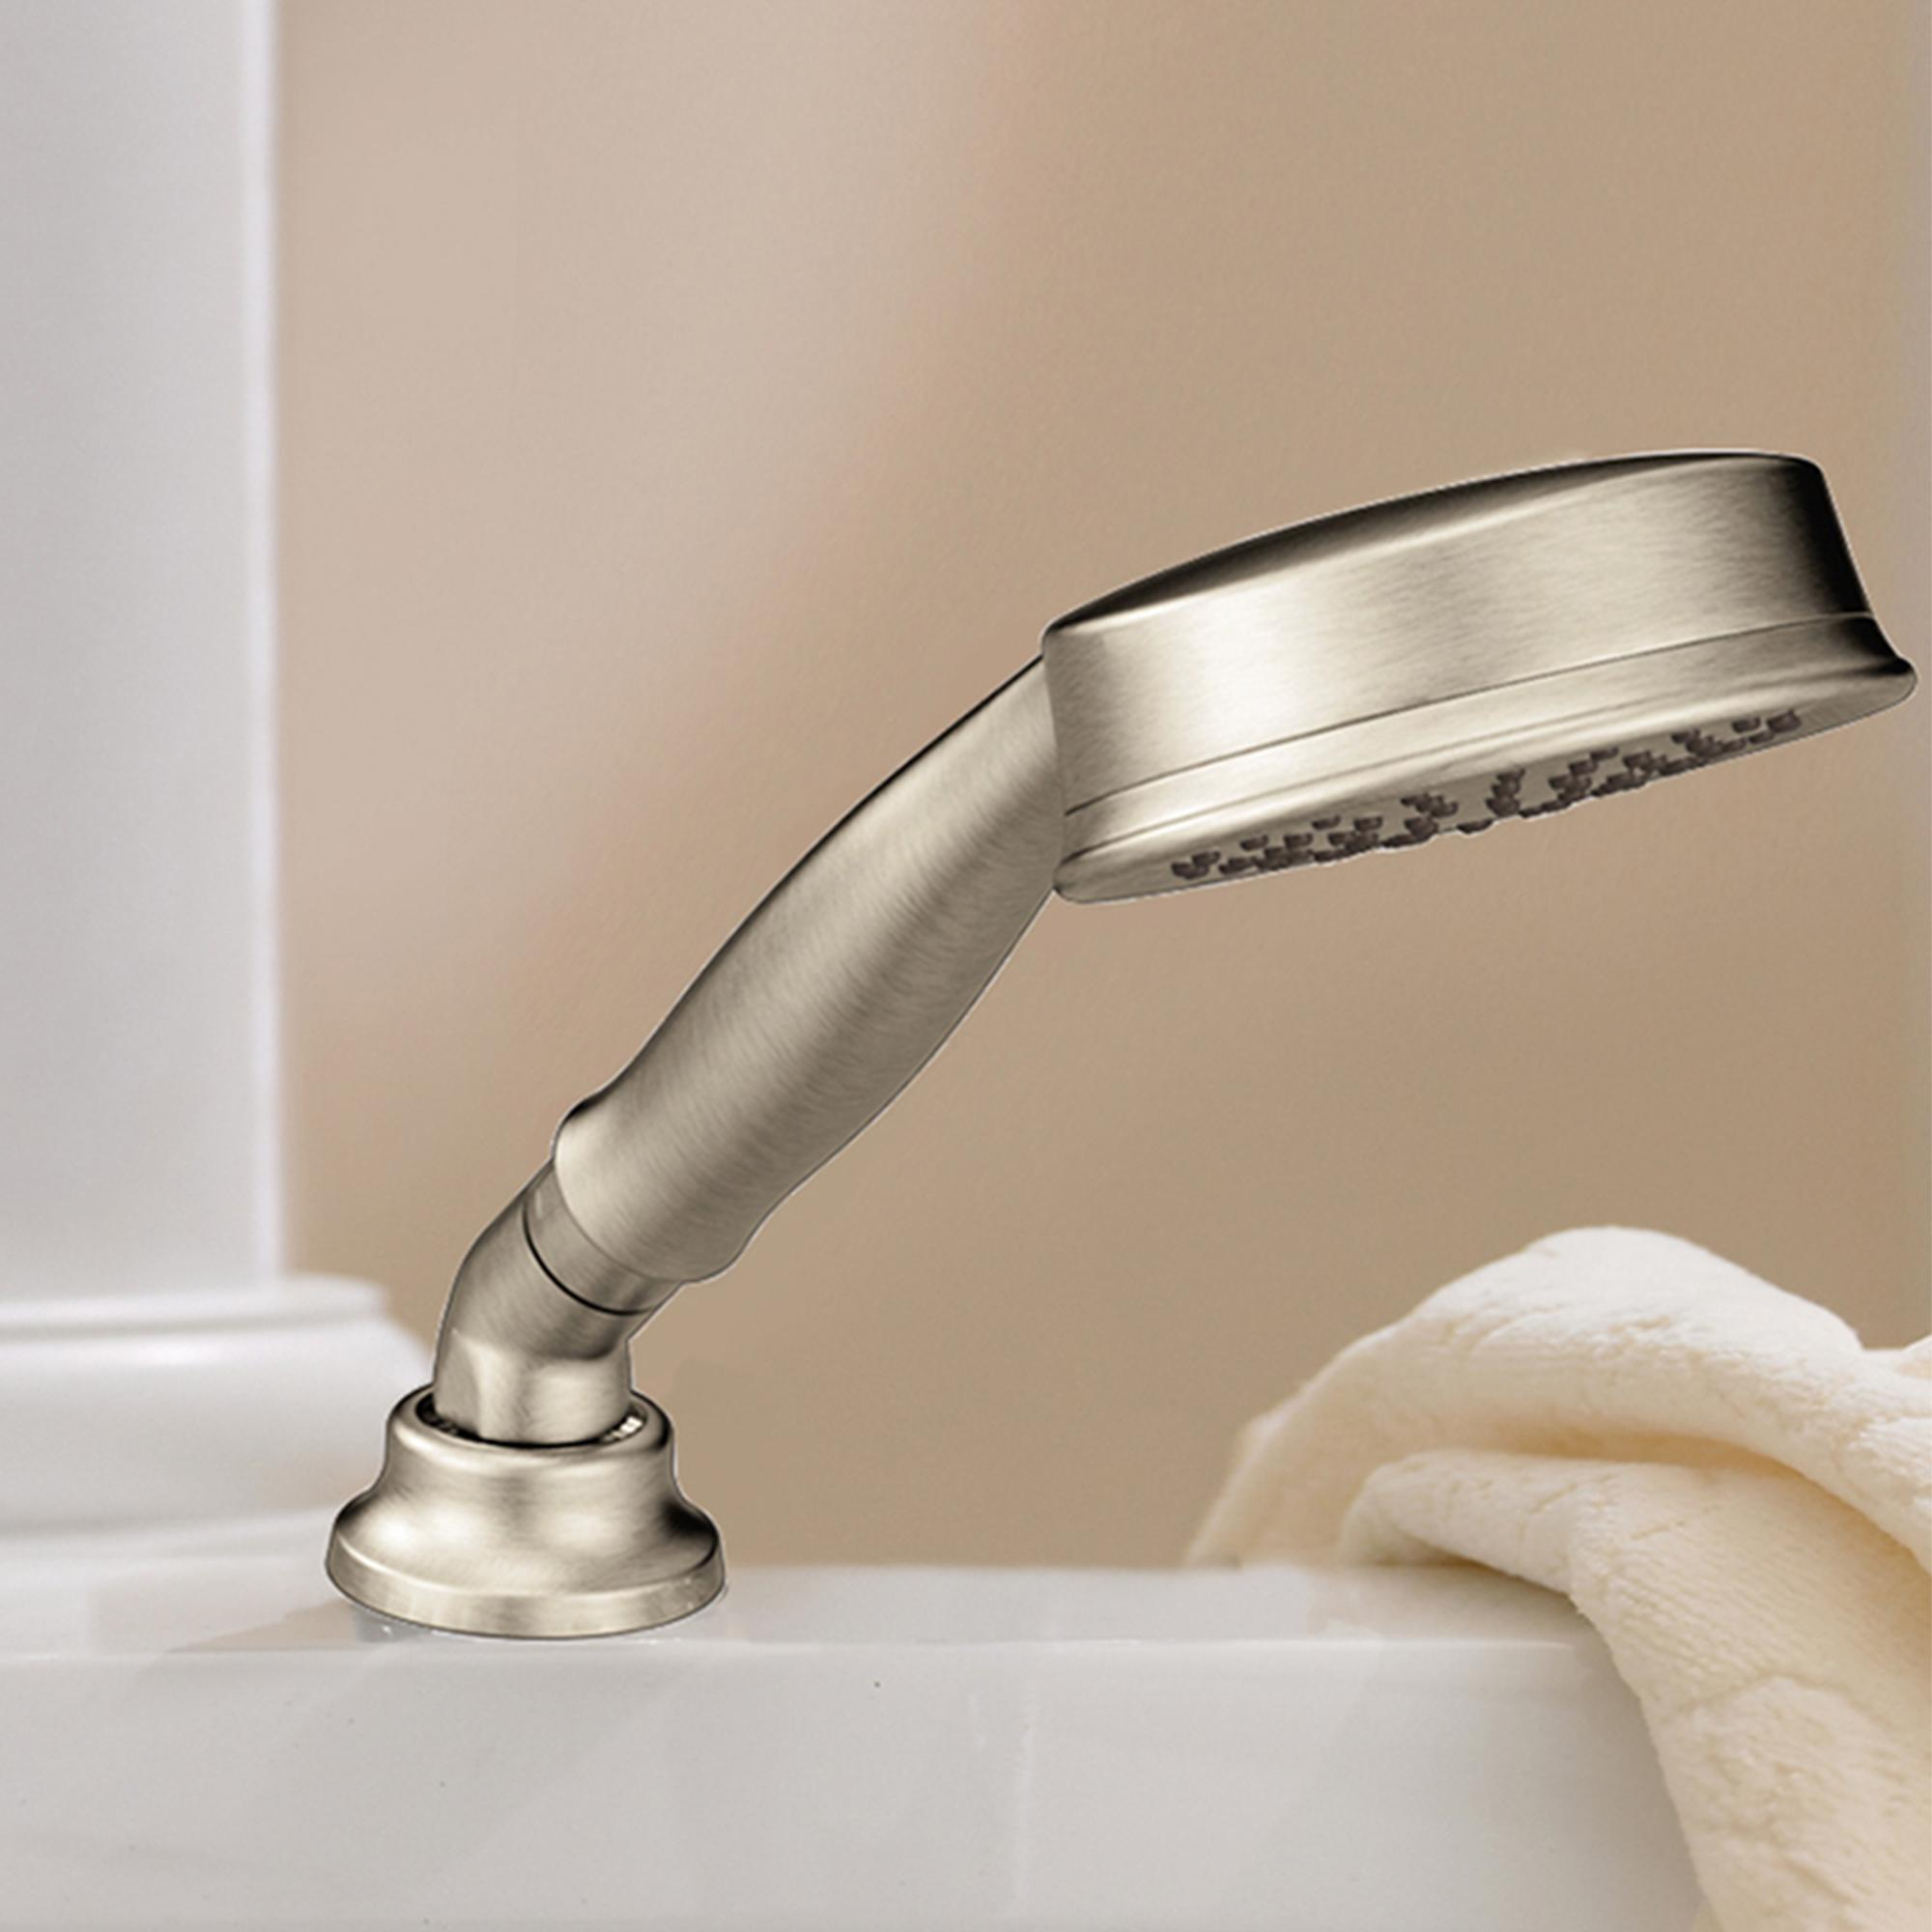 Moen T944BN Eva Two-Handle High-Arc Roman Tub Faucet and Hand Shower ...